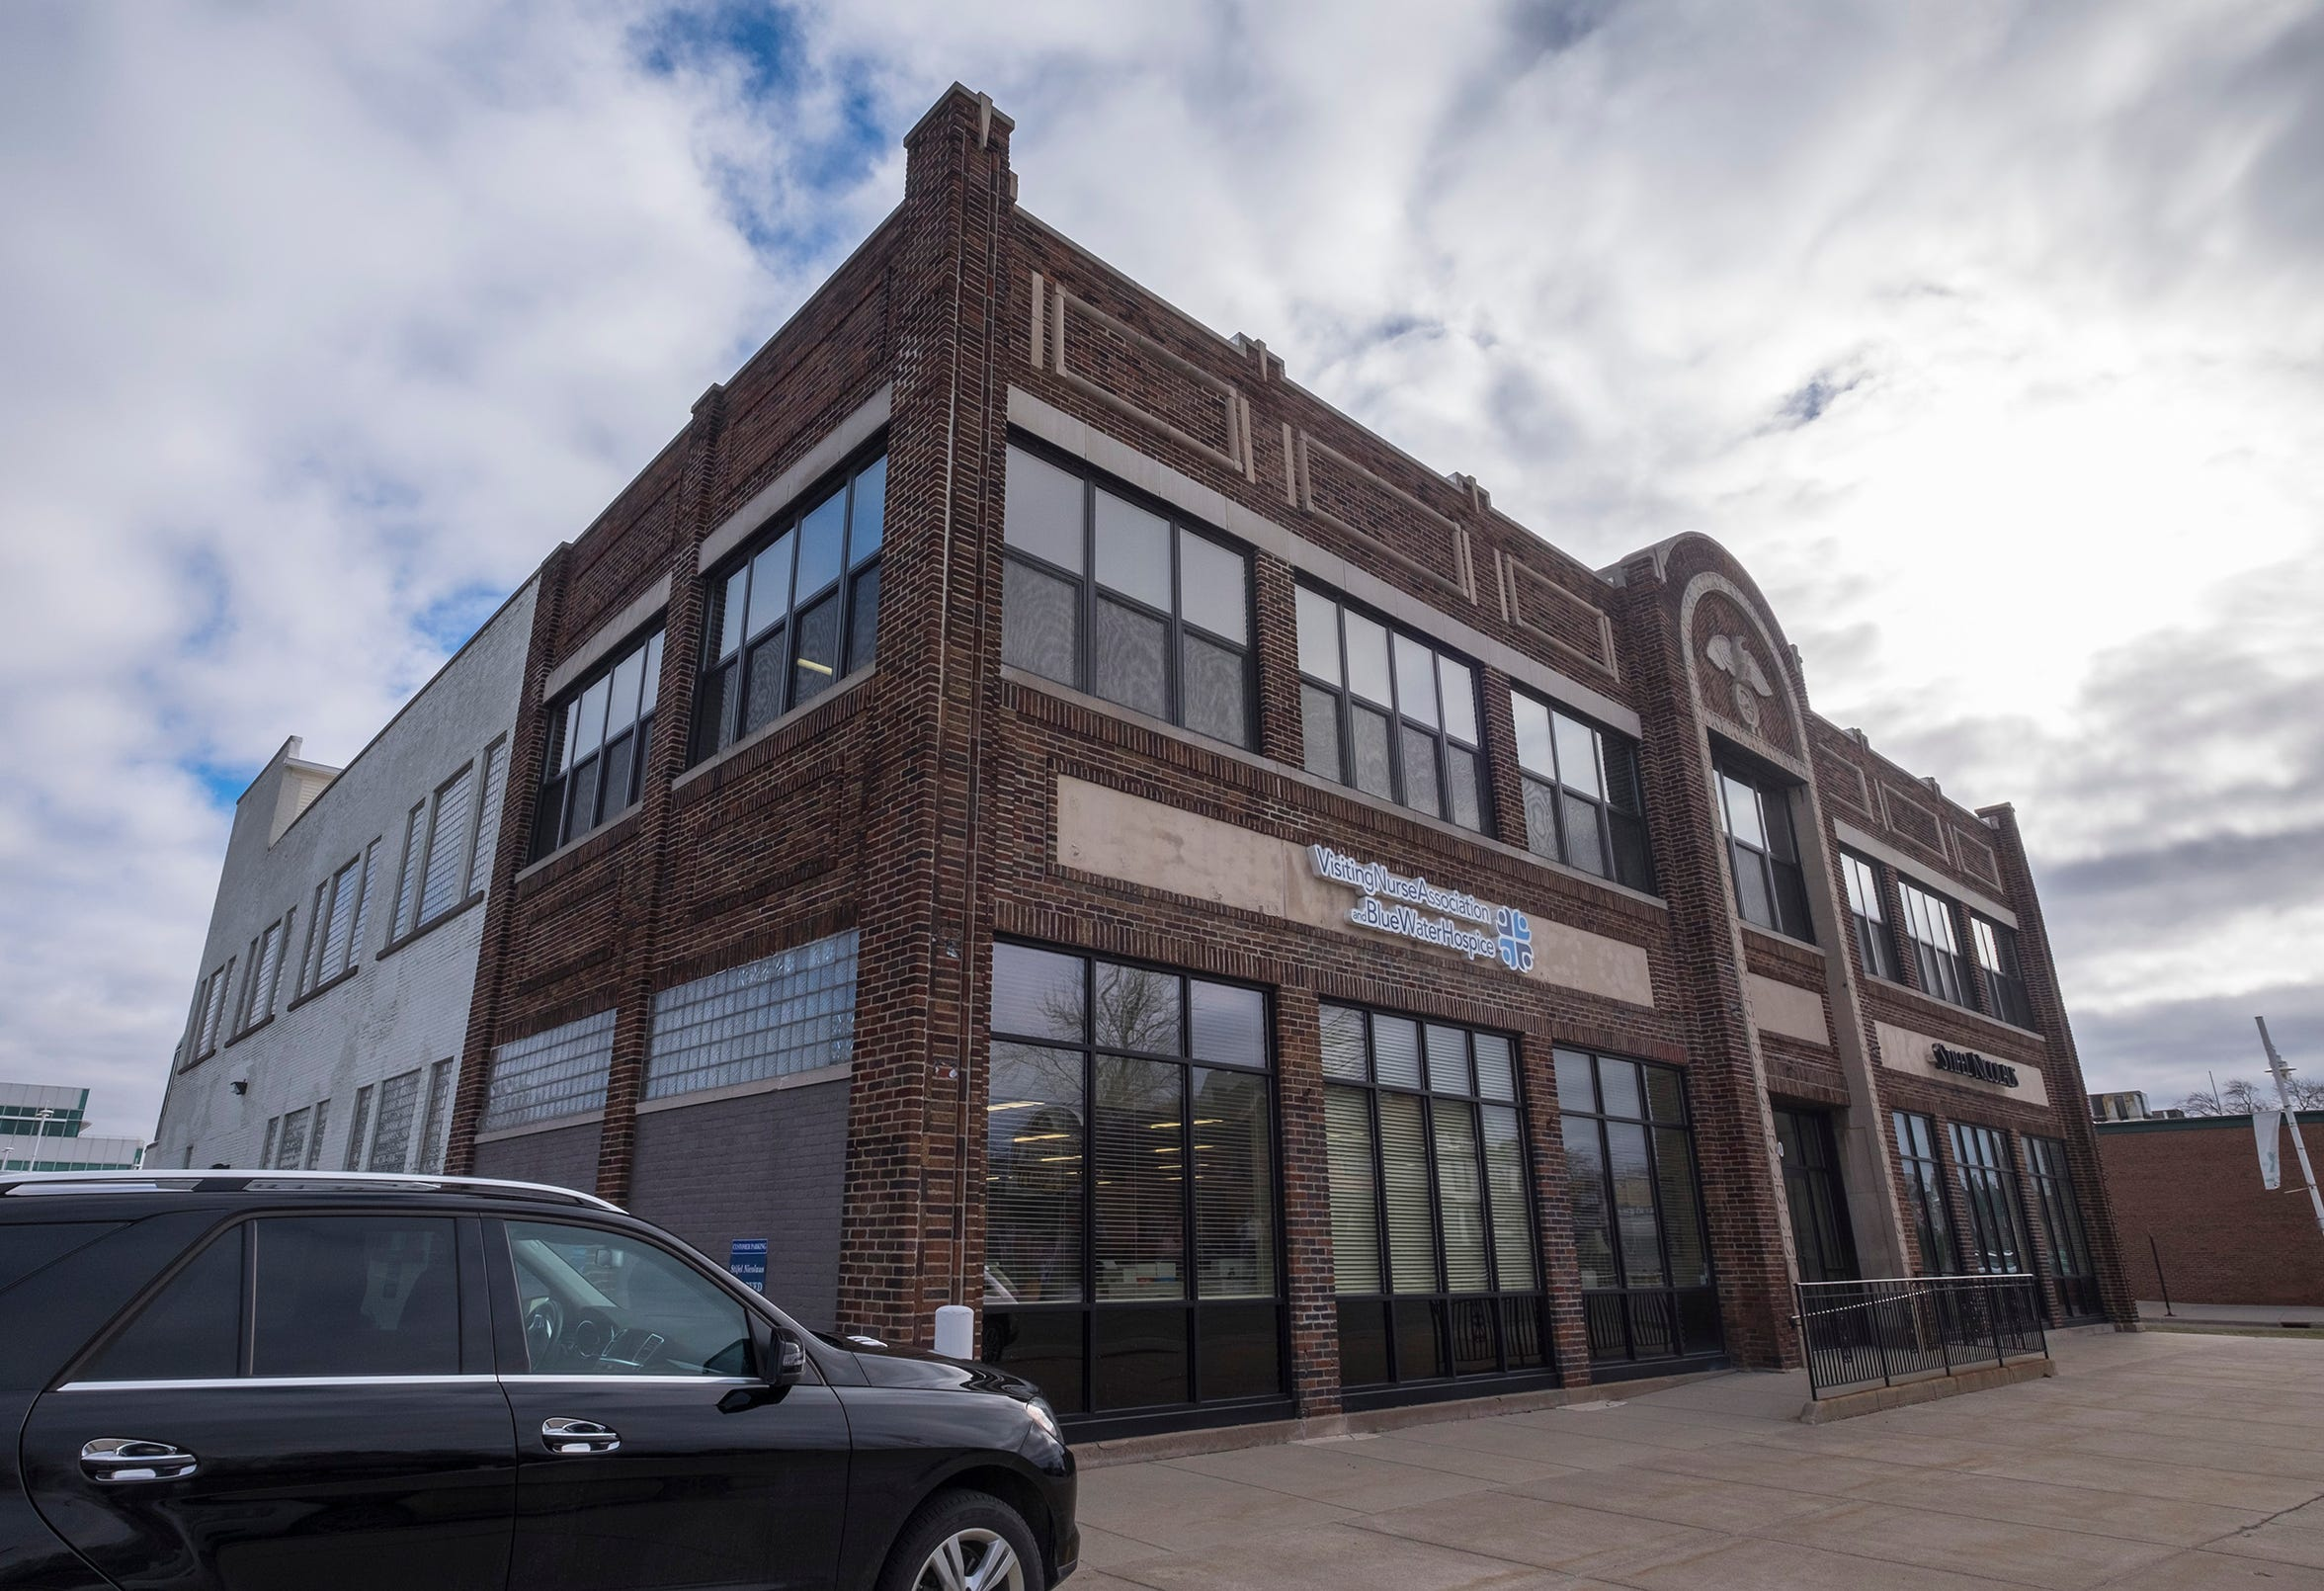 The Parfet Office Building, 1430 Military St. in Port Huron, is one of the properties listed for sale by Acheson Ventures.